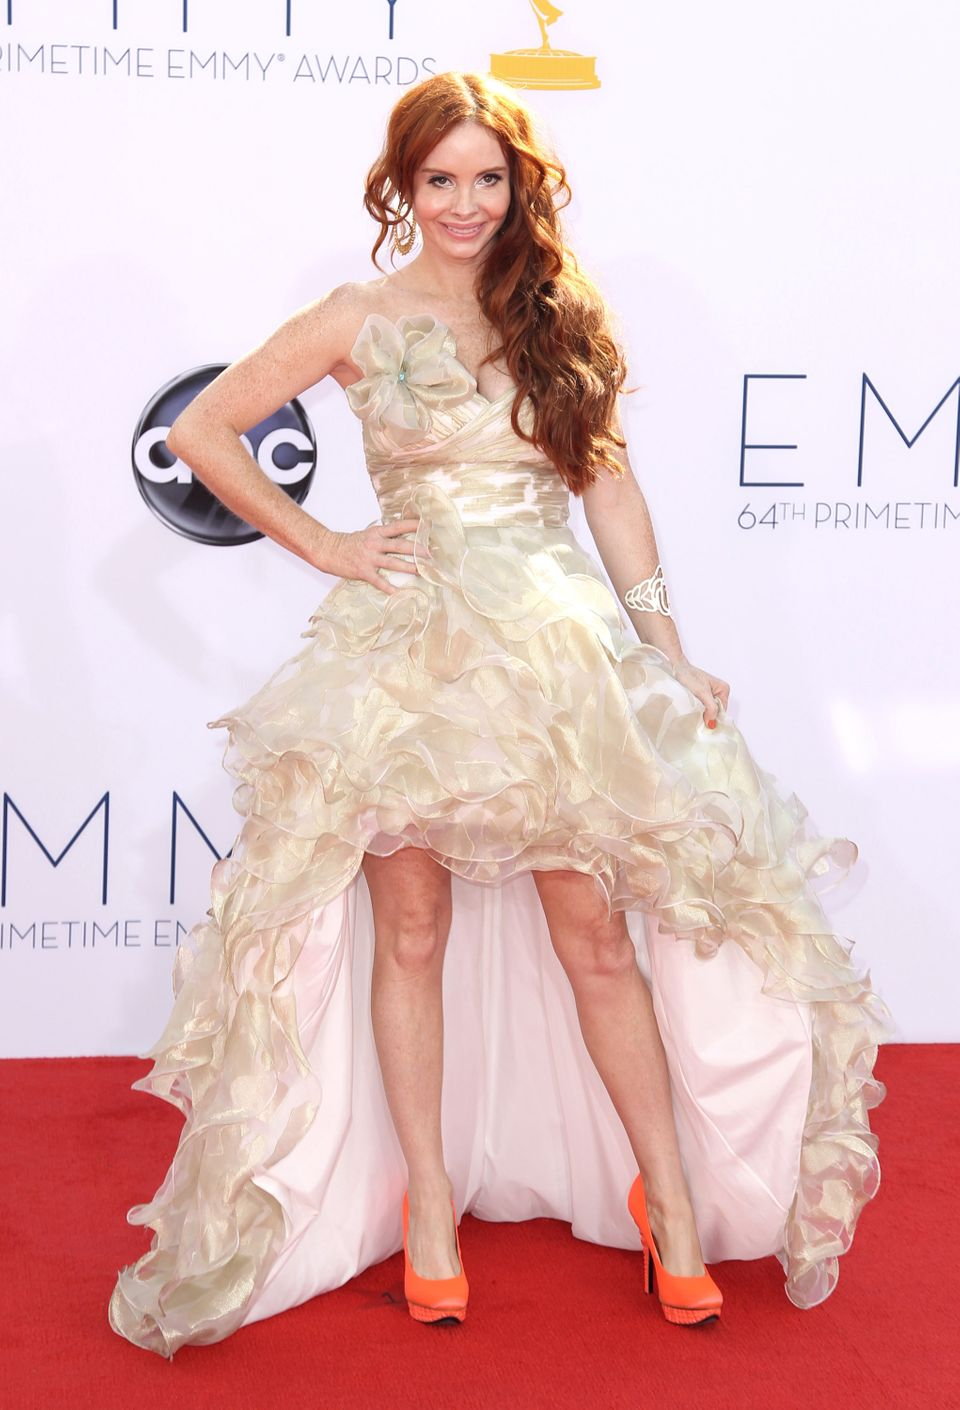 Phoebe Price in a ruffled sweetheart gown.